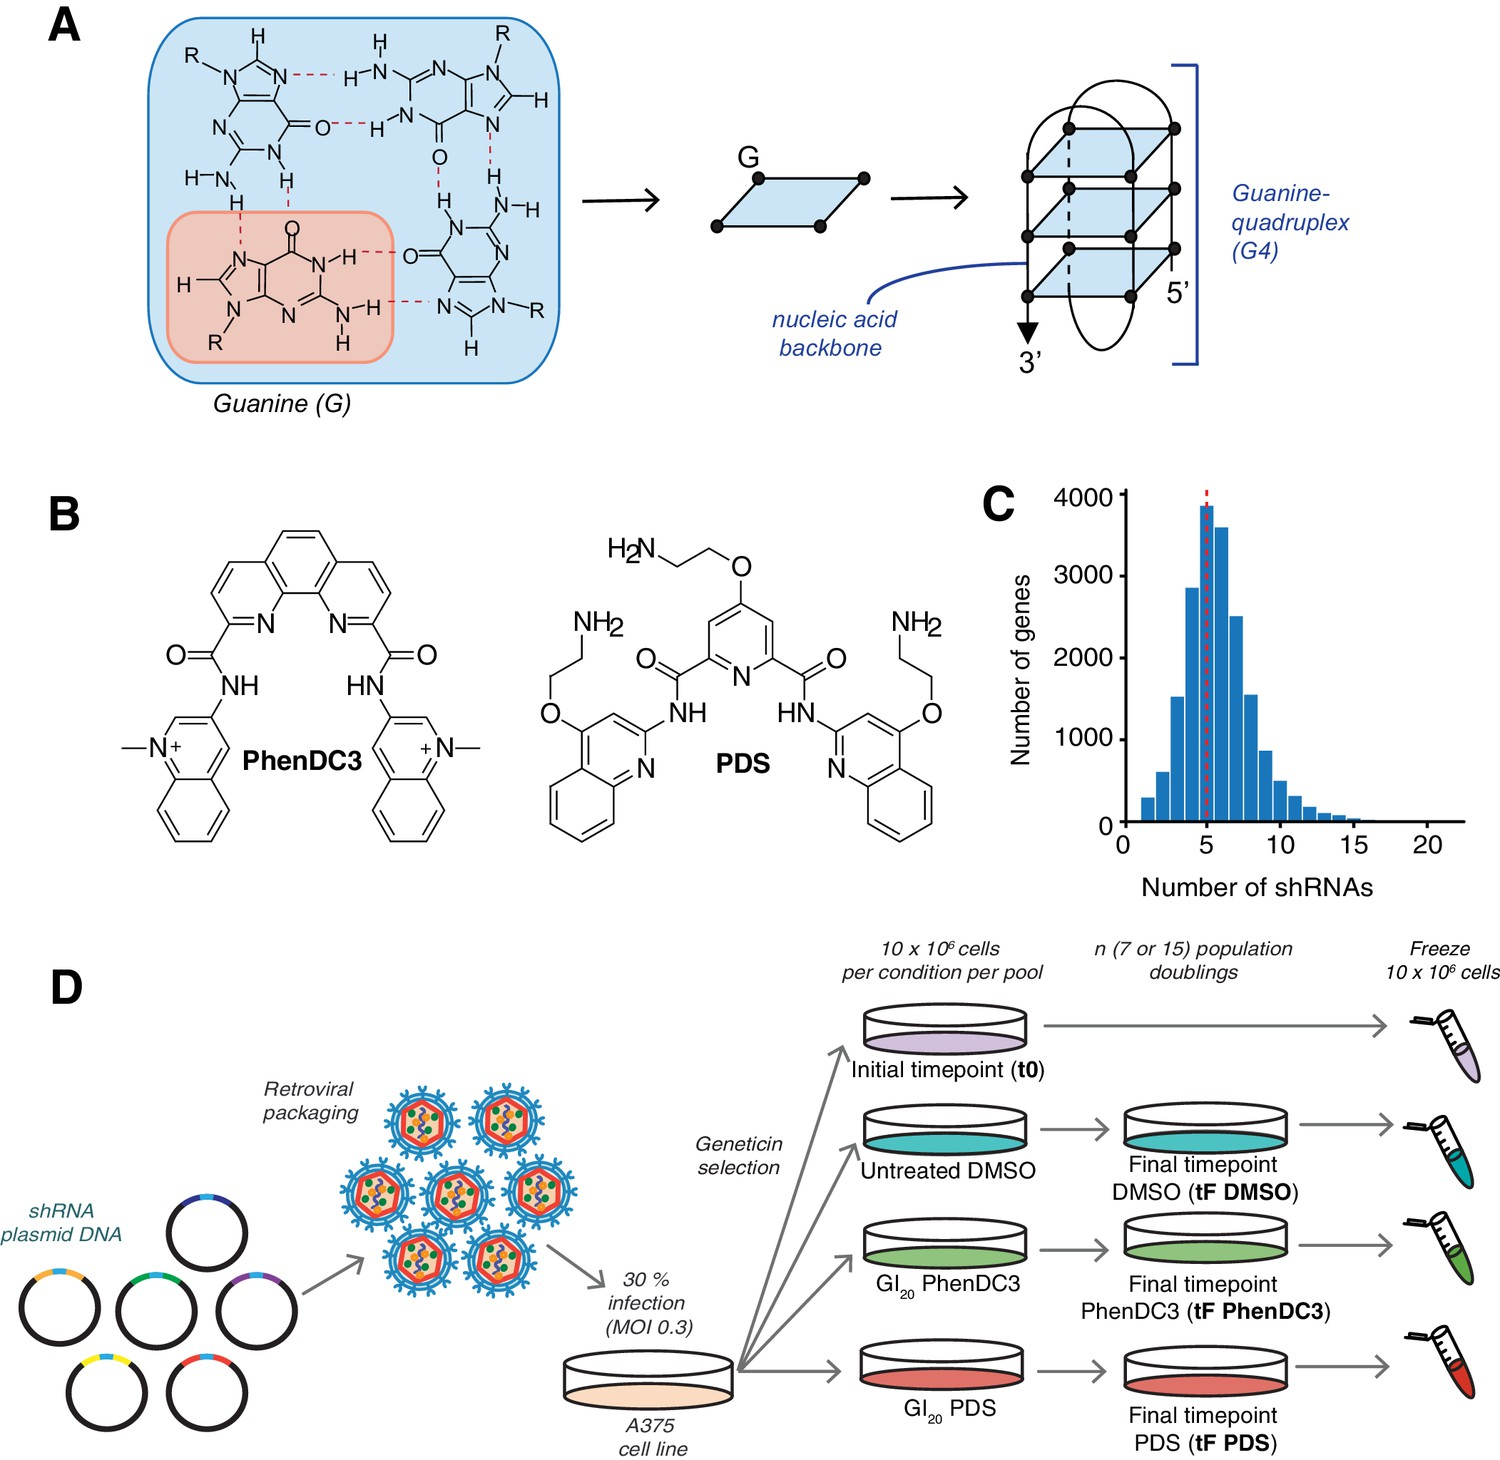 Figures and data in Genetic interactions of G-quadruplexes